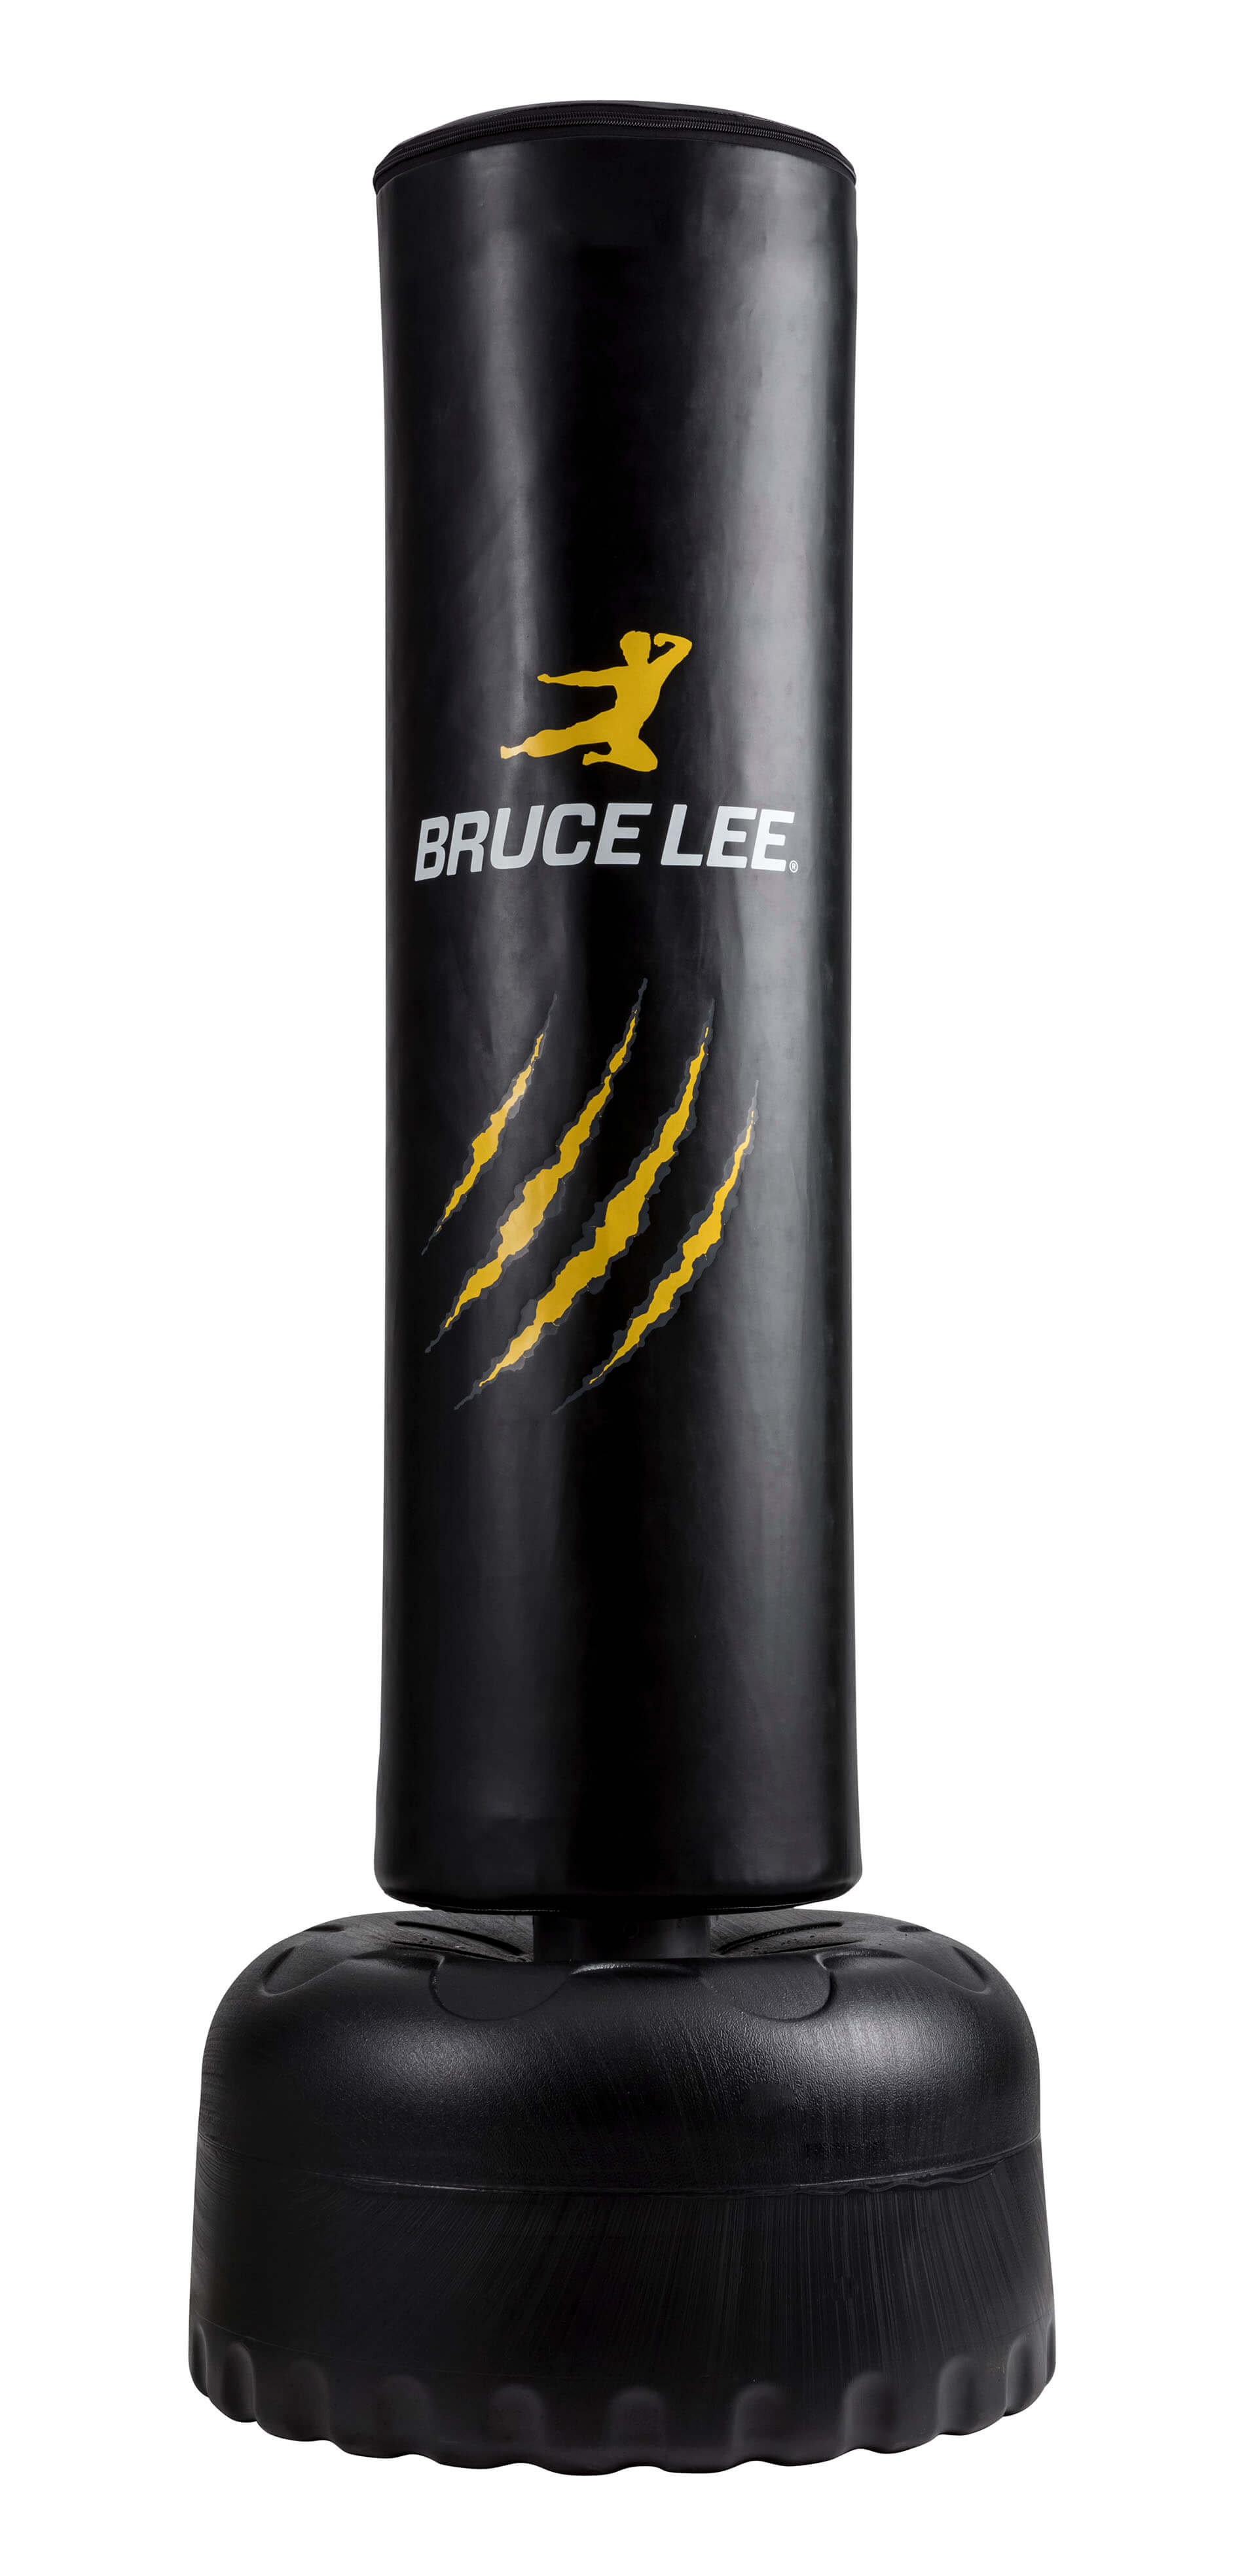 BRUCE LEE Free Stand Punch Bag